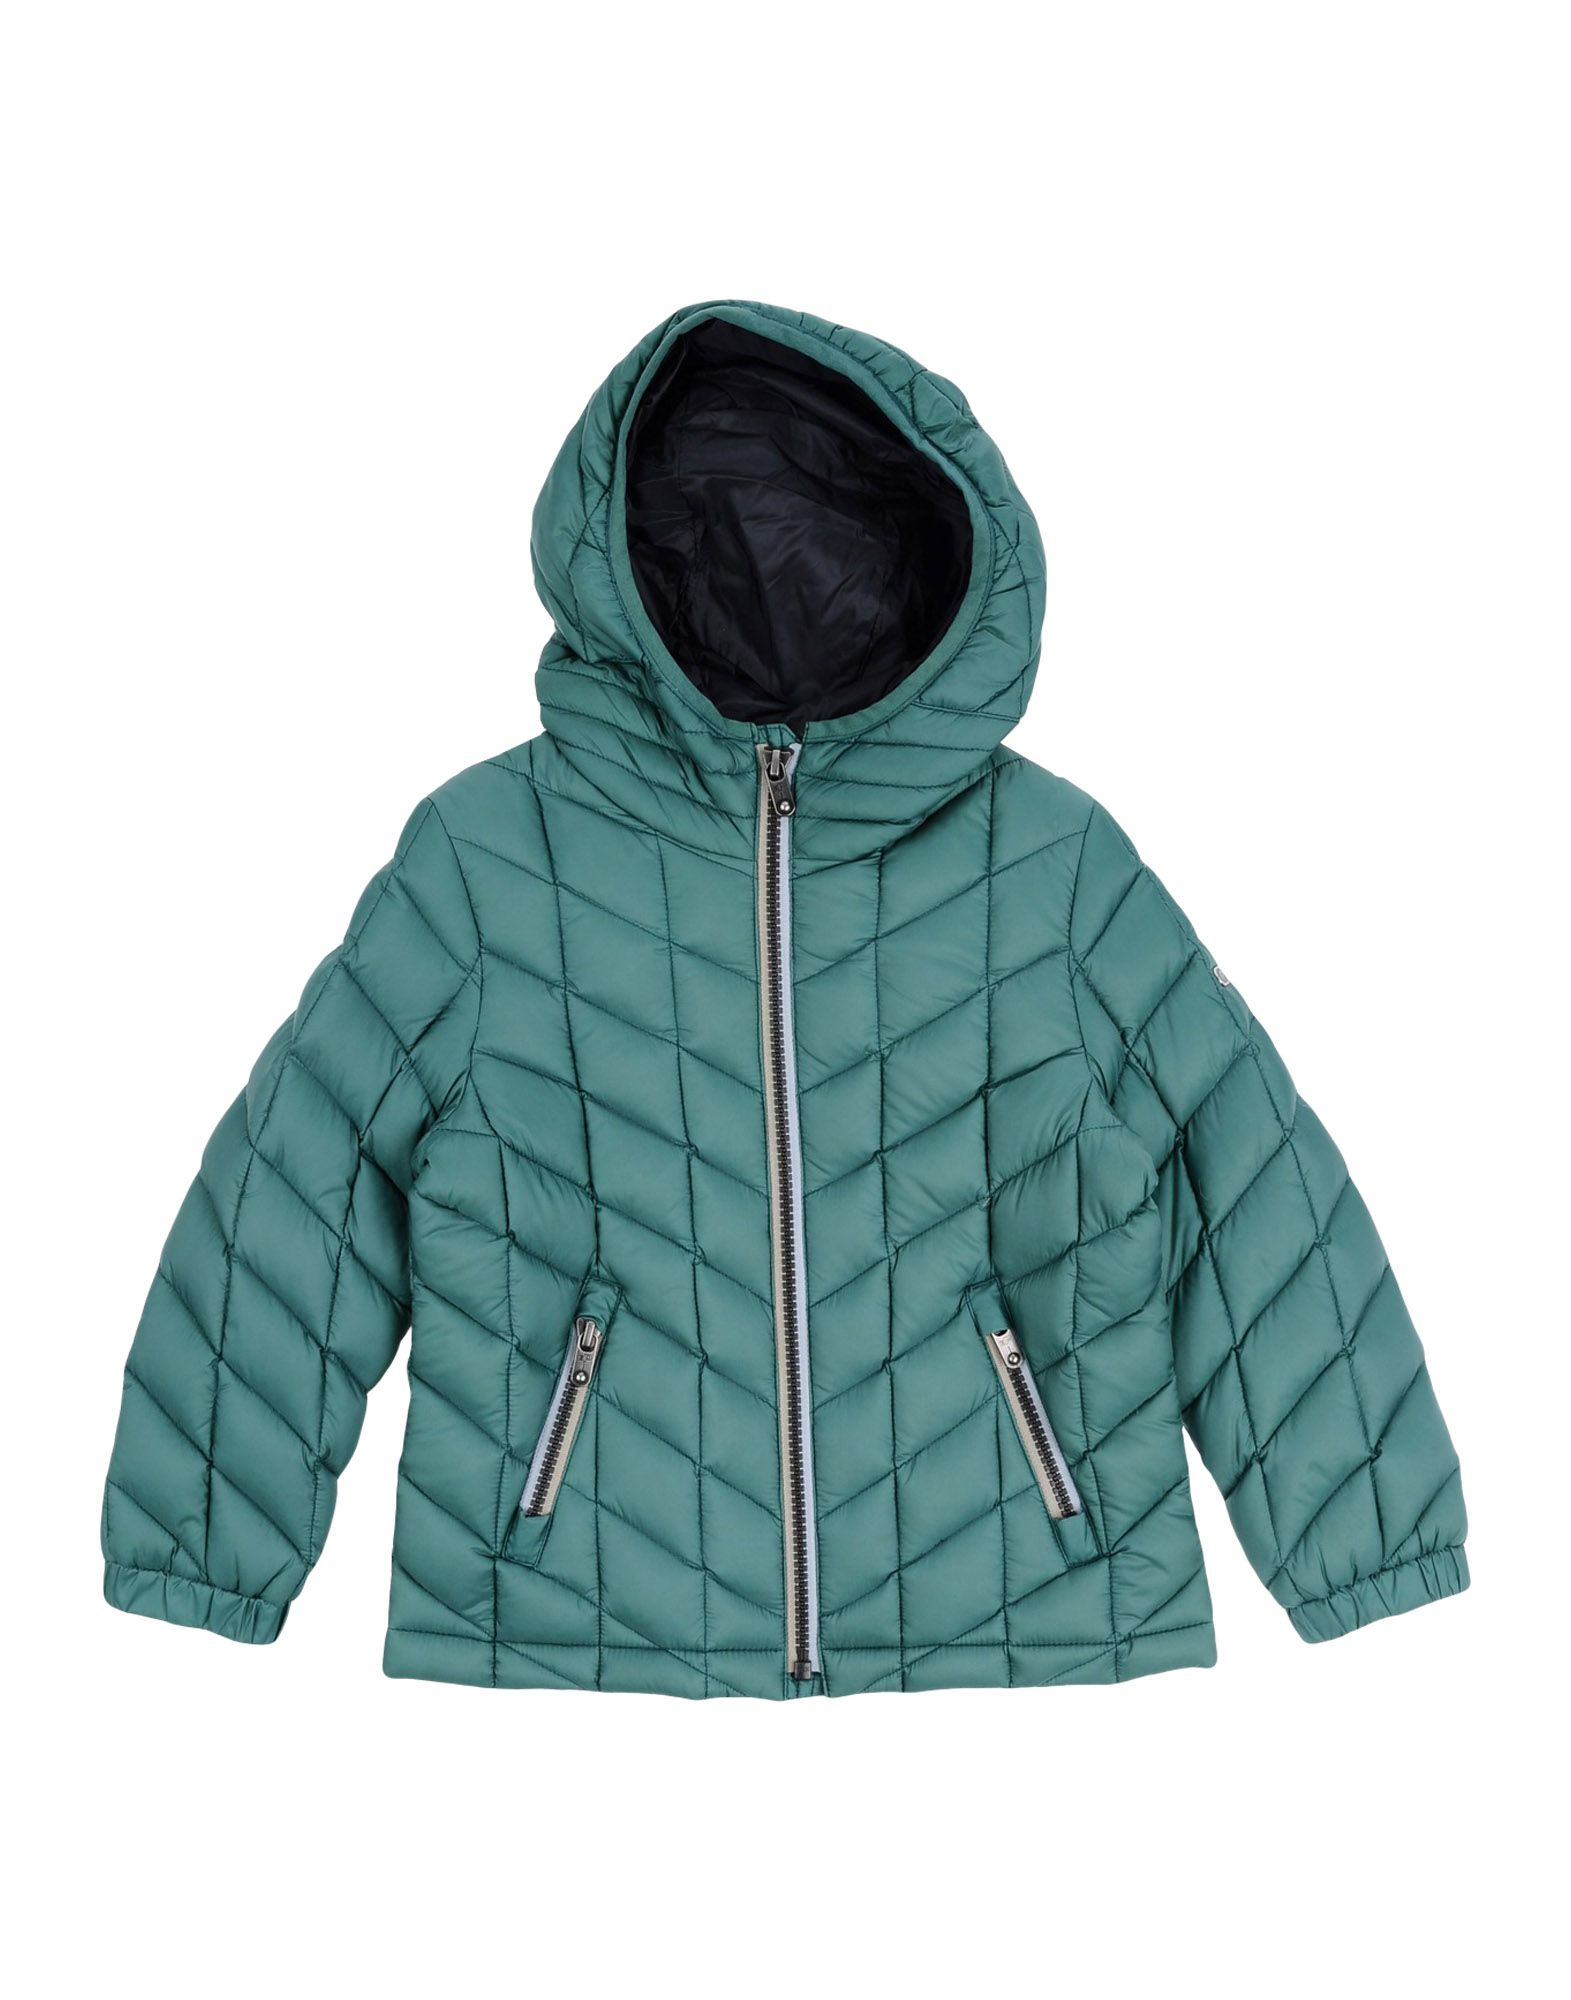 EDDIE PEN Down jackets